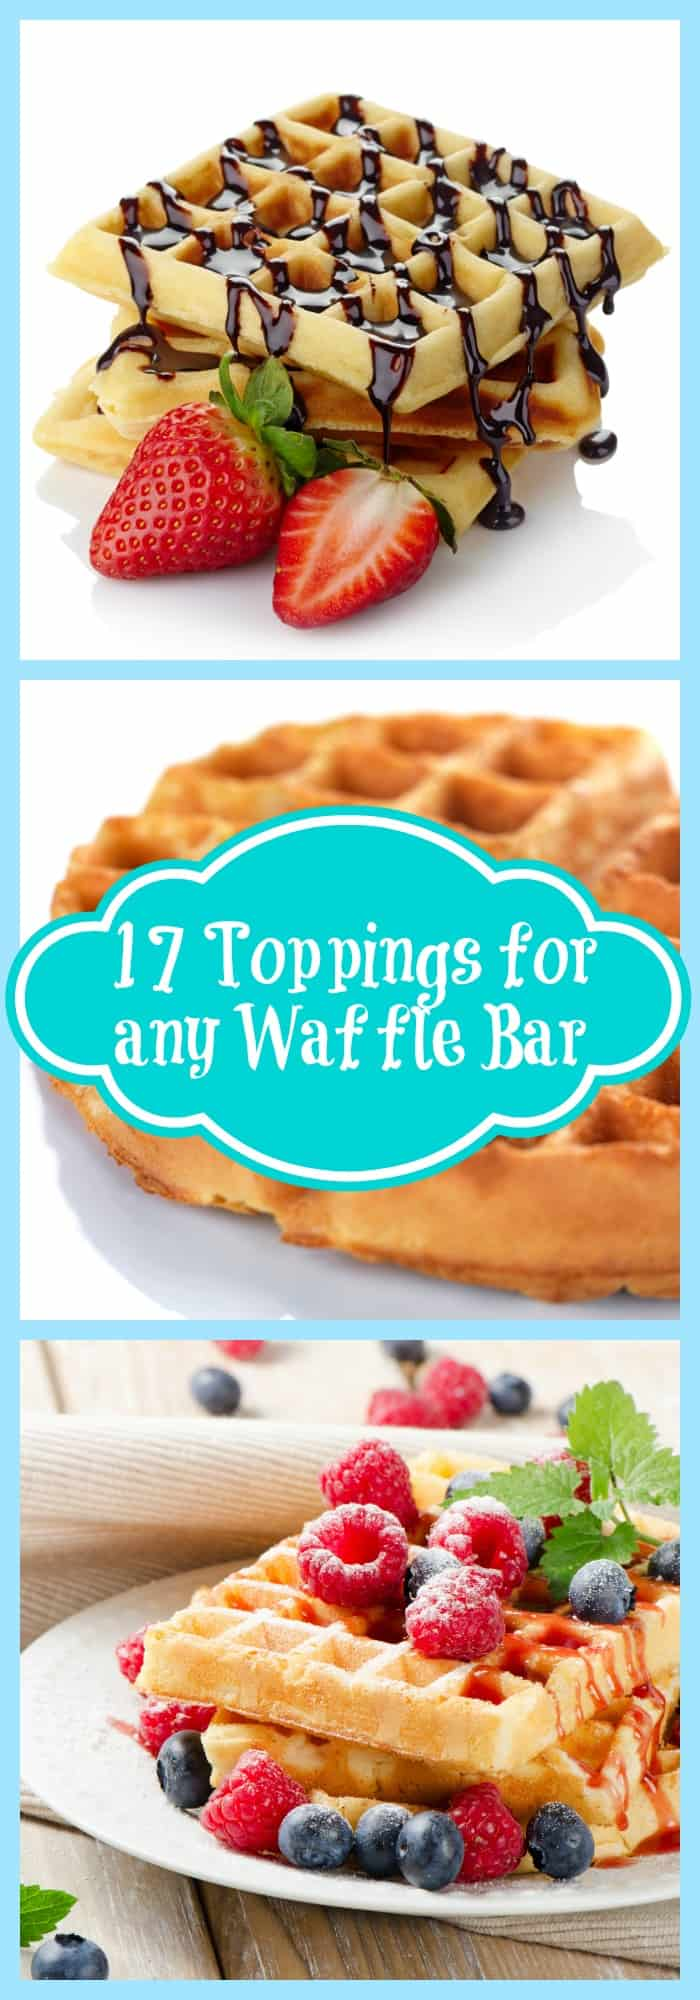 Cooking--17 Toppings for any Waffle Bar--The Organized Mom